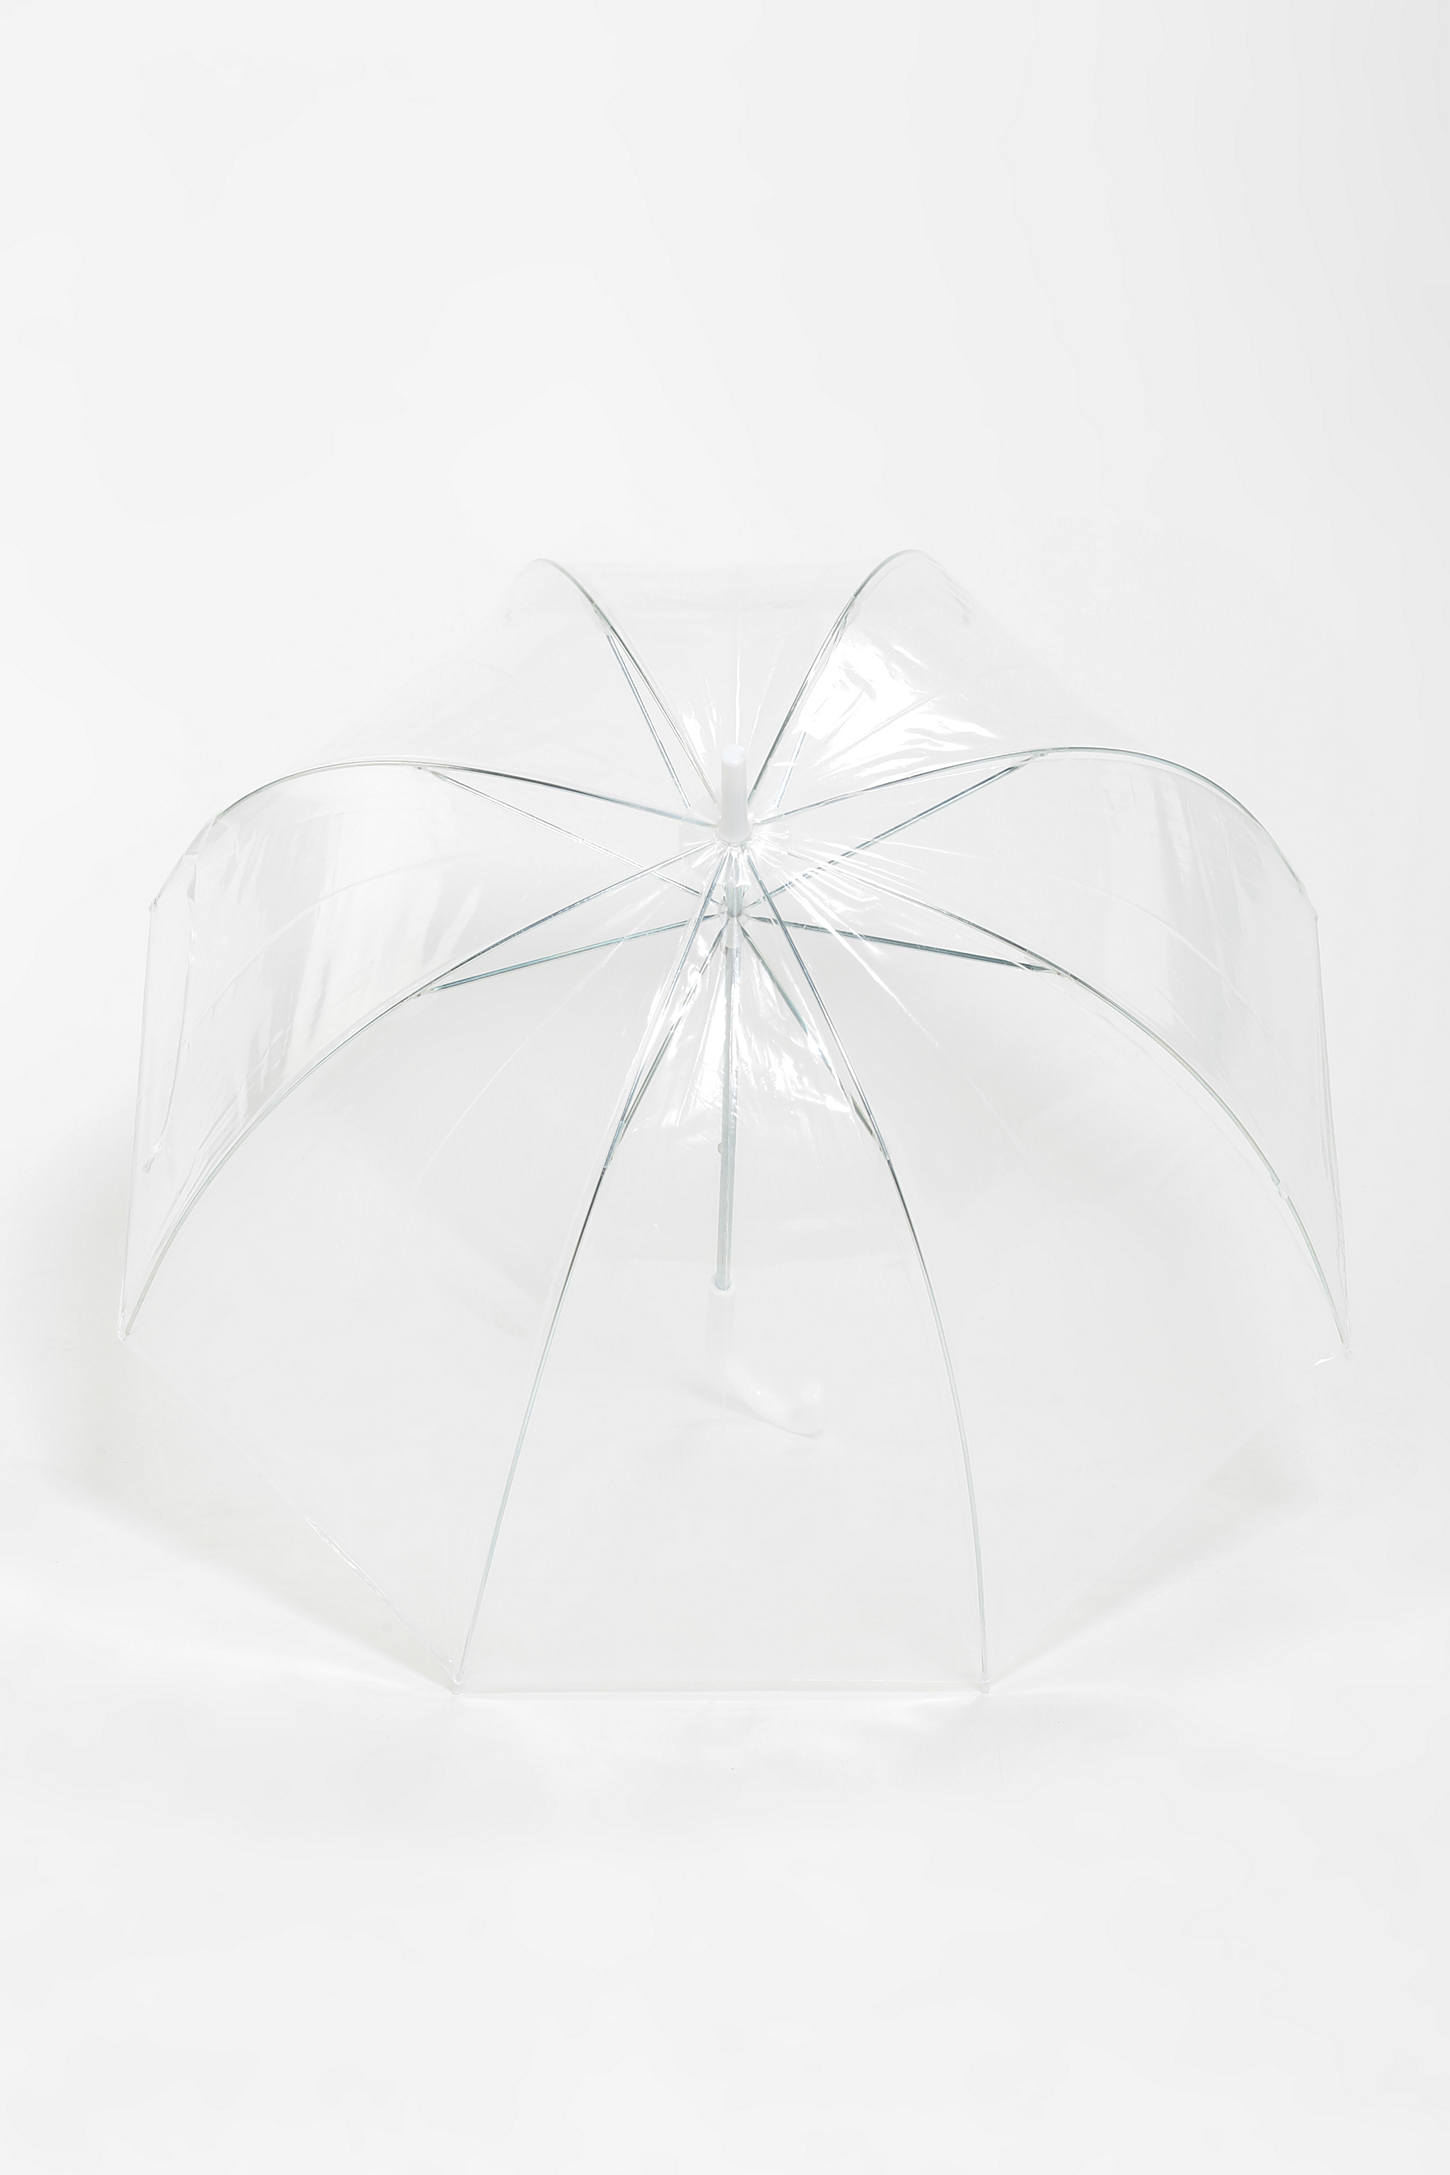 Slide View: 2: Bubble Umbrella